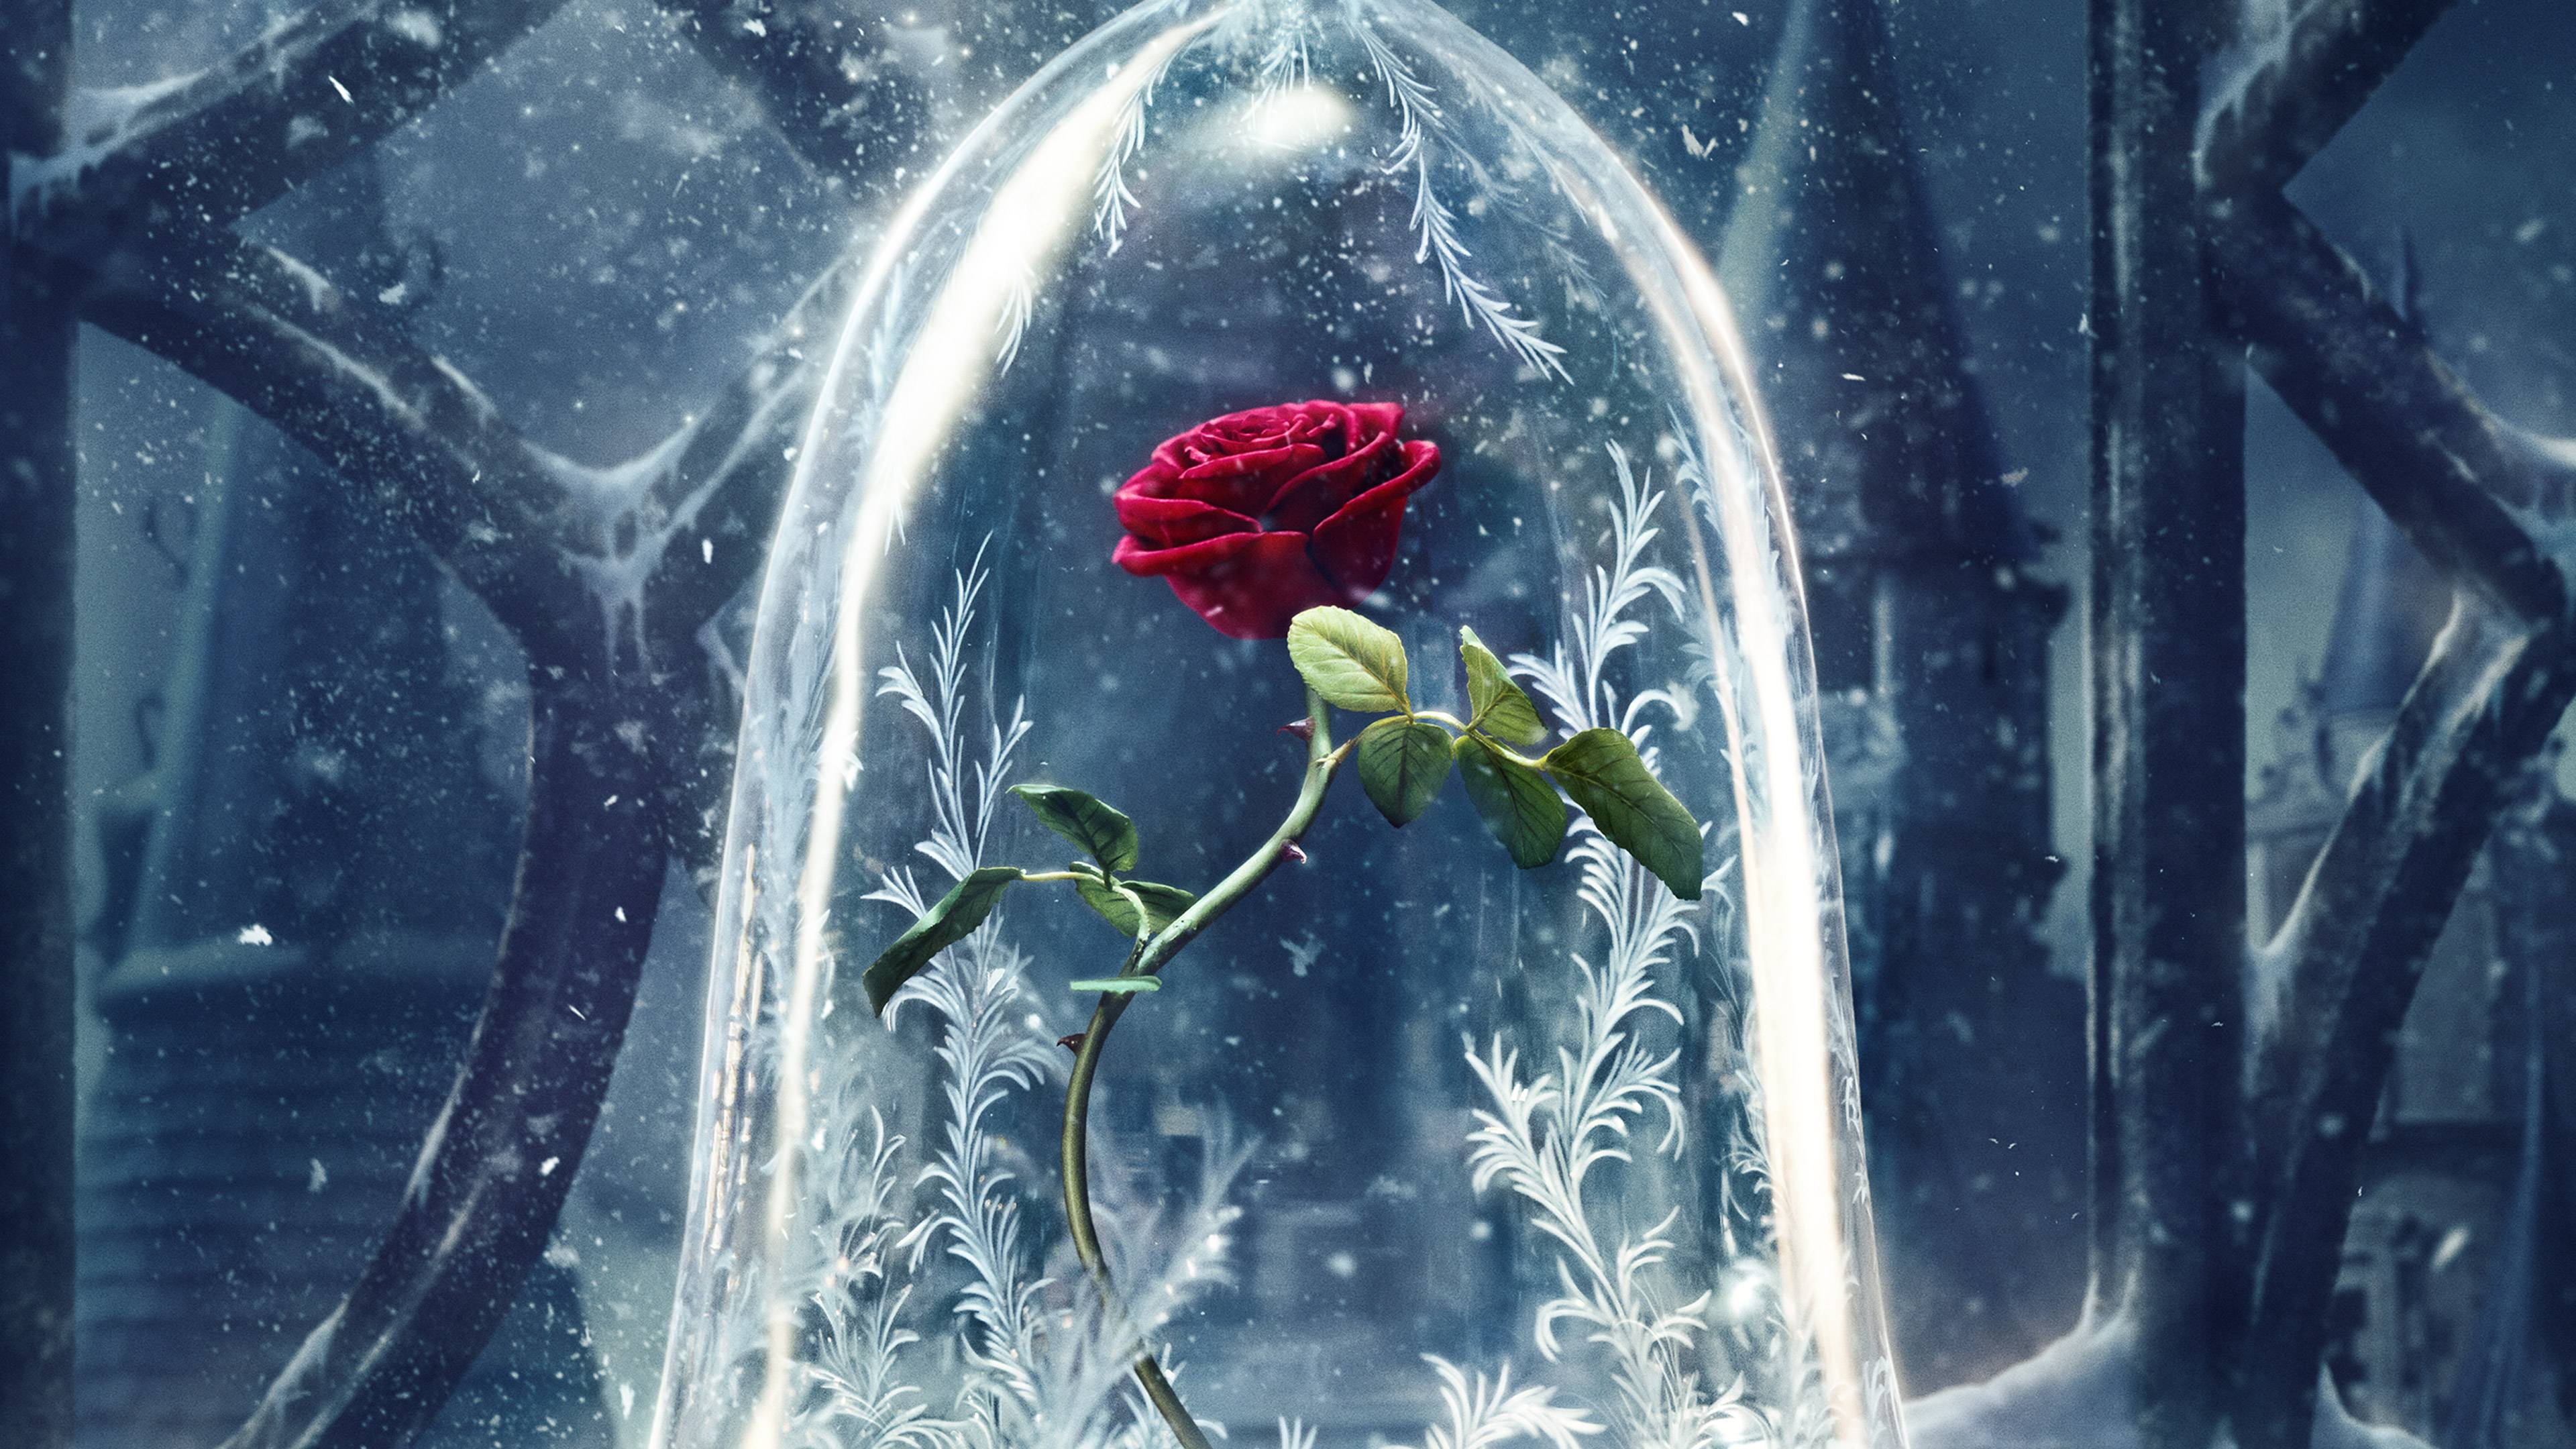 beauty and the beast original 4k 1536364239 - Beauty And The Beast Original 4k - rose wallpapers, beauty and the beast wallpapers, 4k-wallpapers, 2017 movies wallpapers